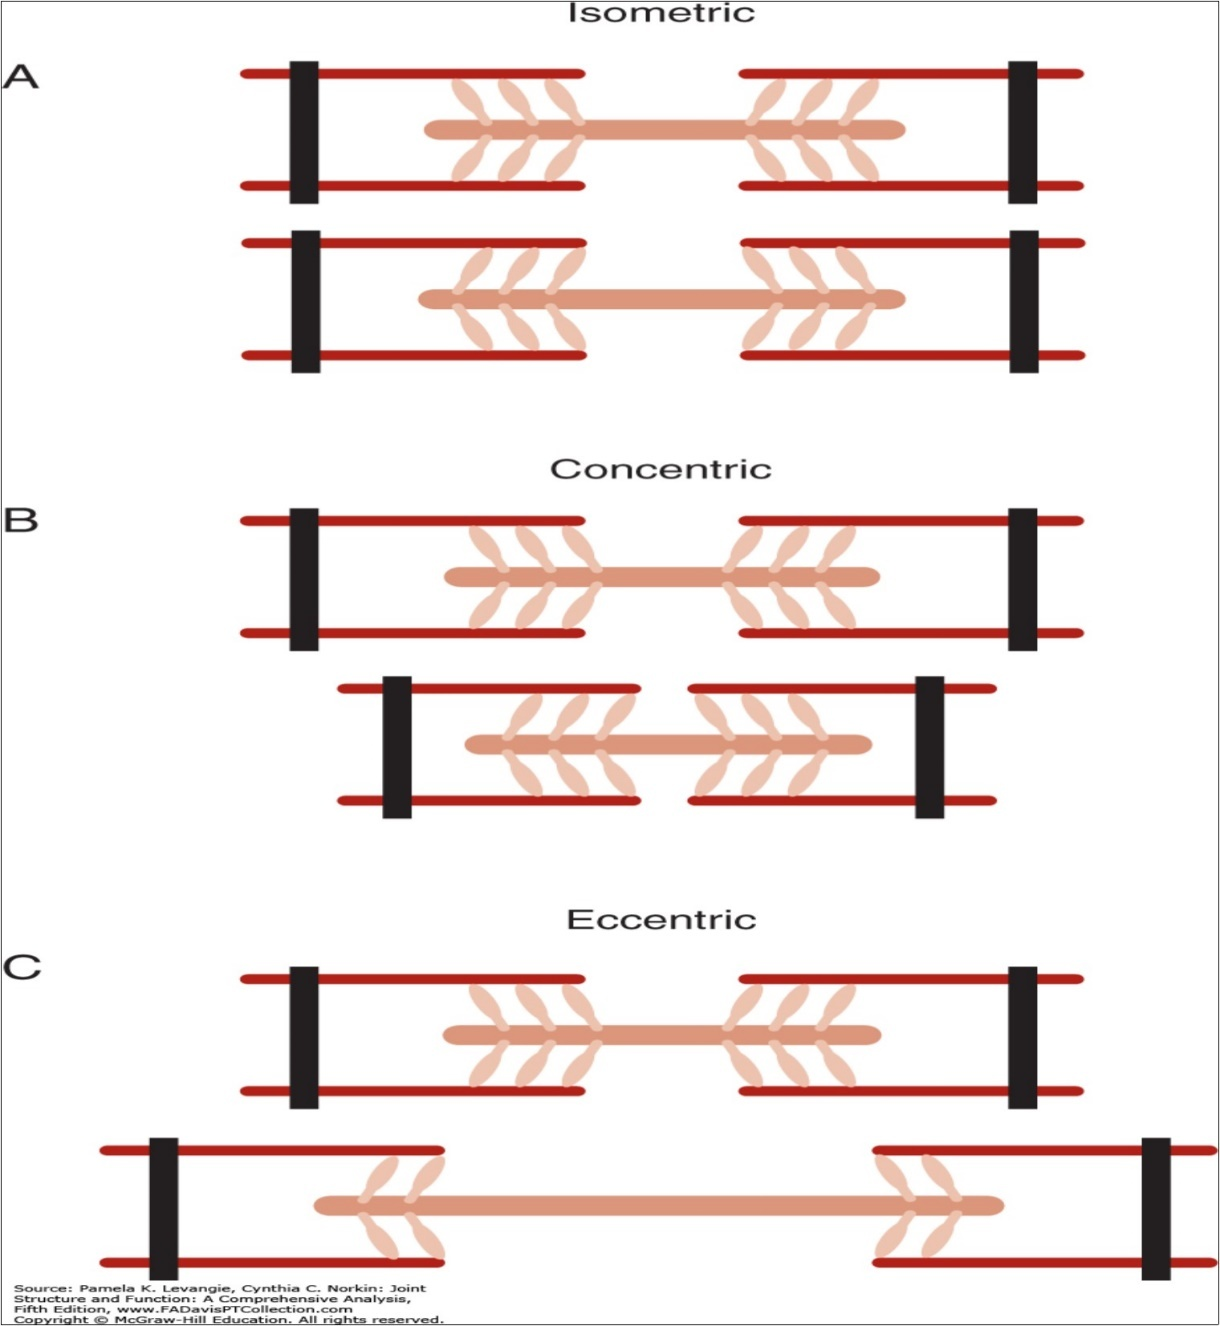 Physiology of Distinct Modes of Muscular Contraction - Physiology of  Distinct Modes of Muscular Contraction - Open Access Pub